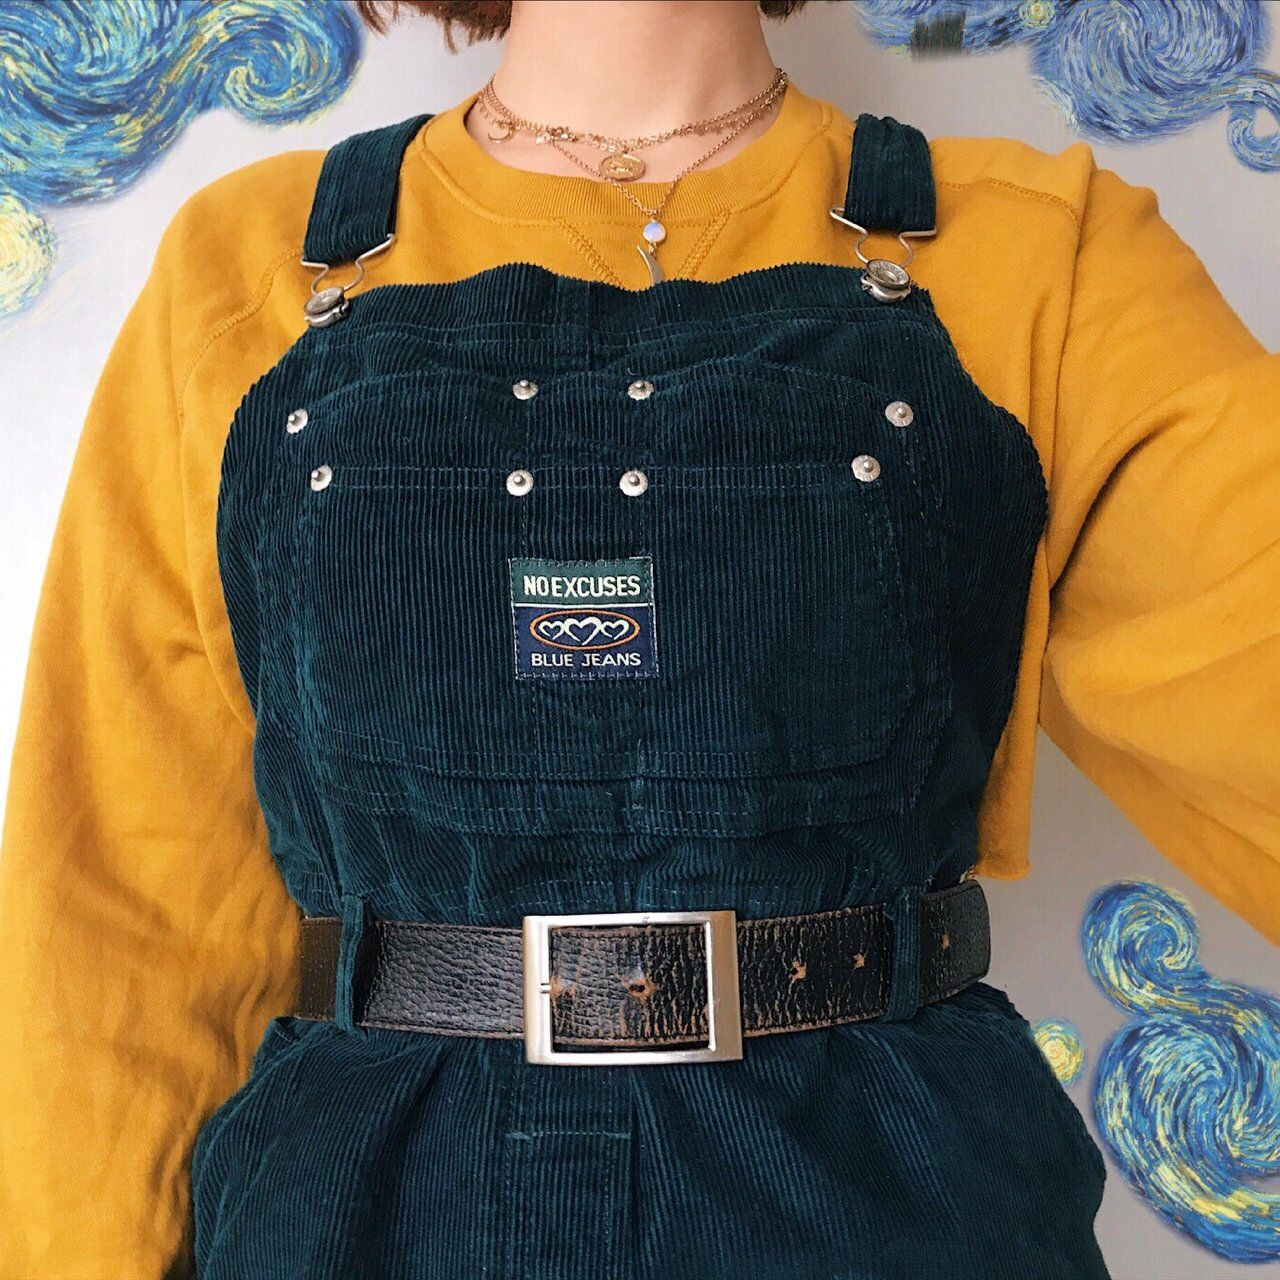 958e42e68 Listed on Depop by libertymai in 2019   depop   Retro outfits ...